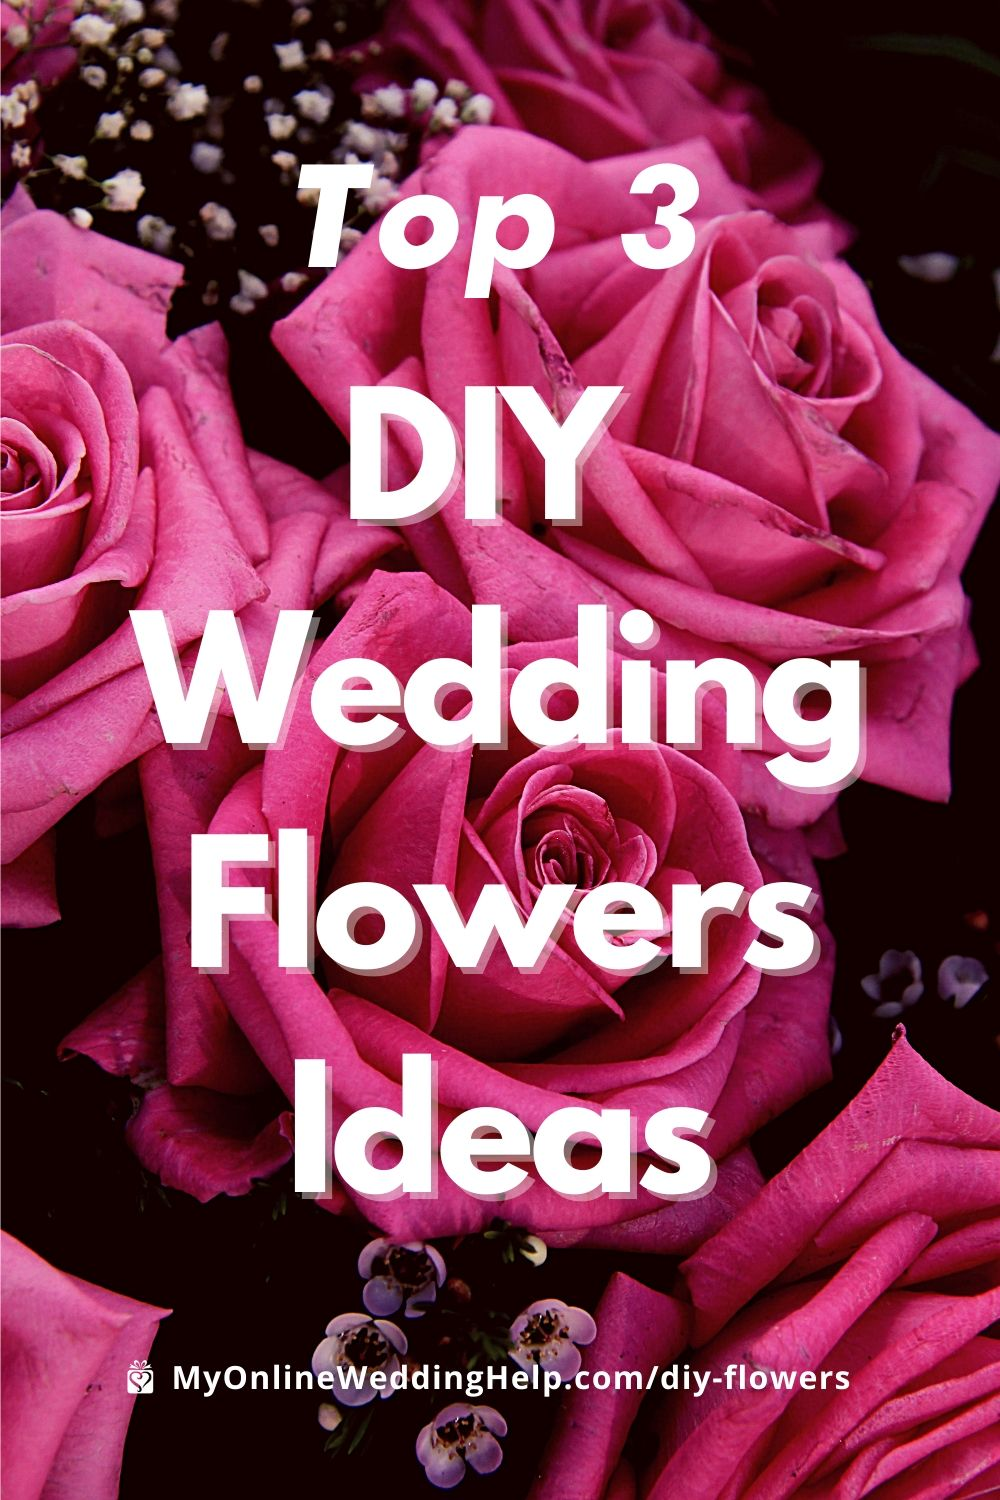 Top 3 DIY Wedding Flowers Ideas